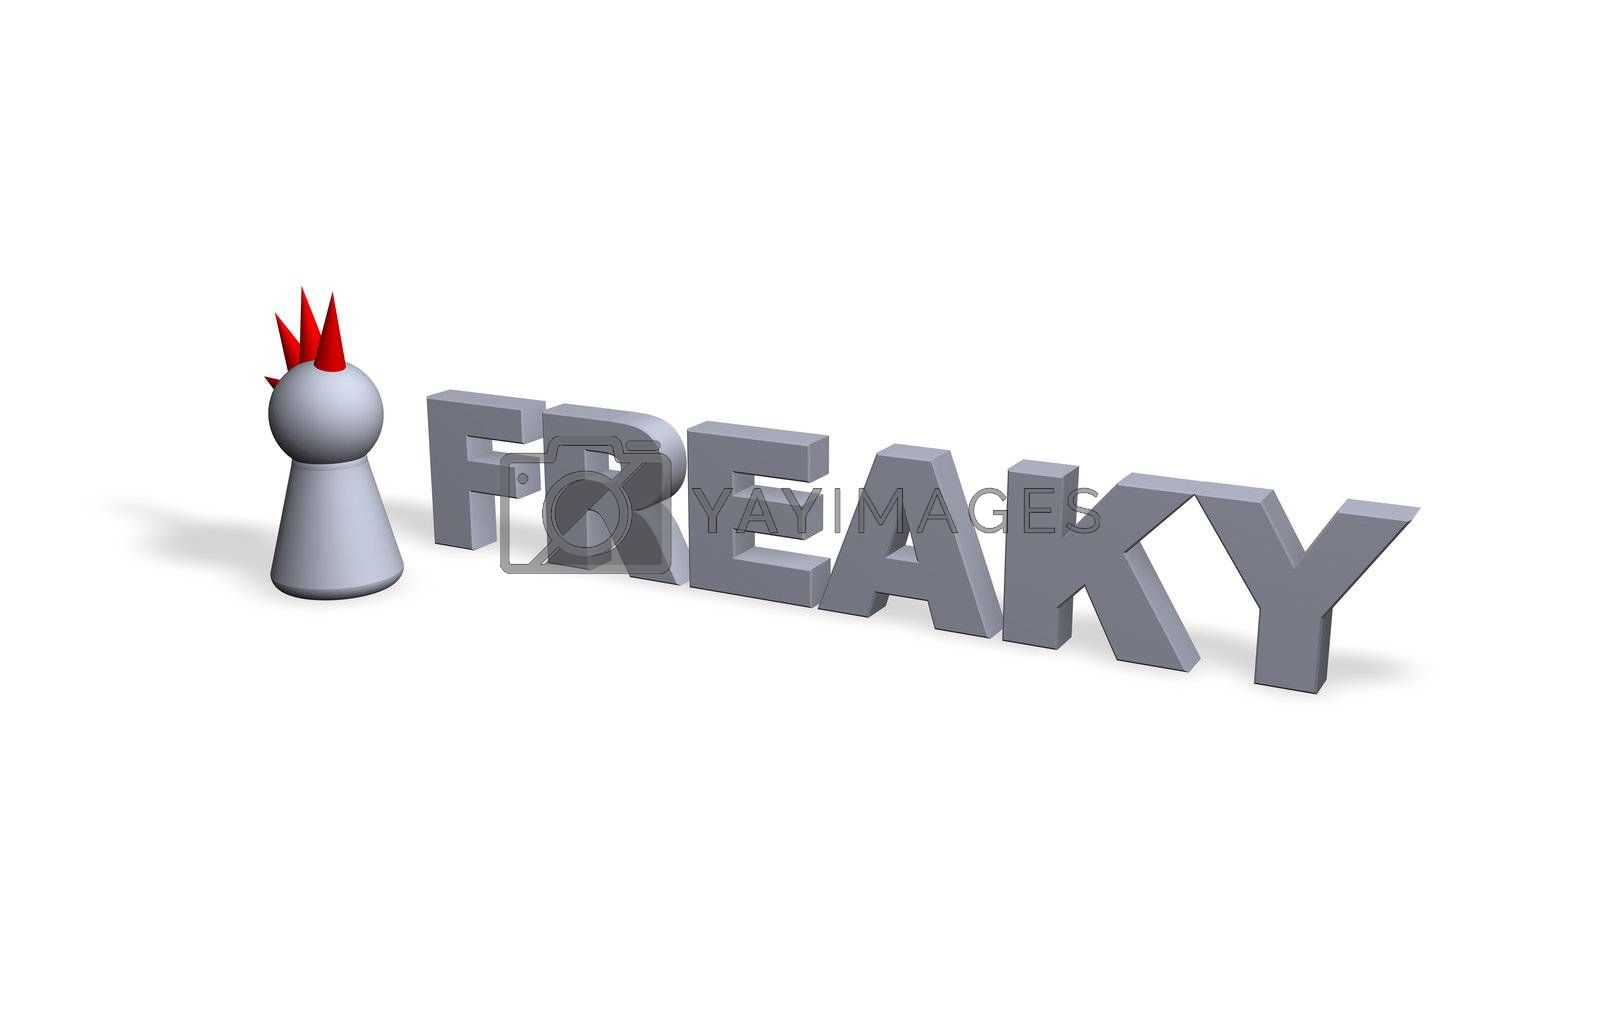 freaky text in 3d and play figure with red hair